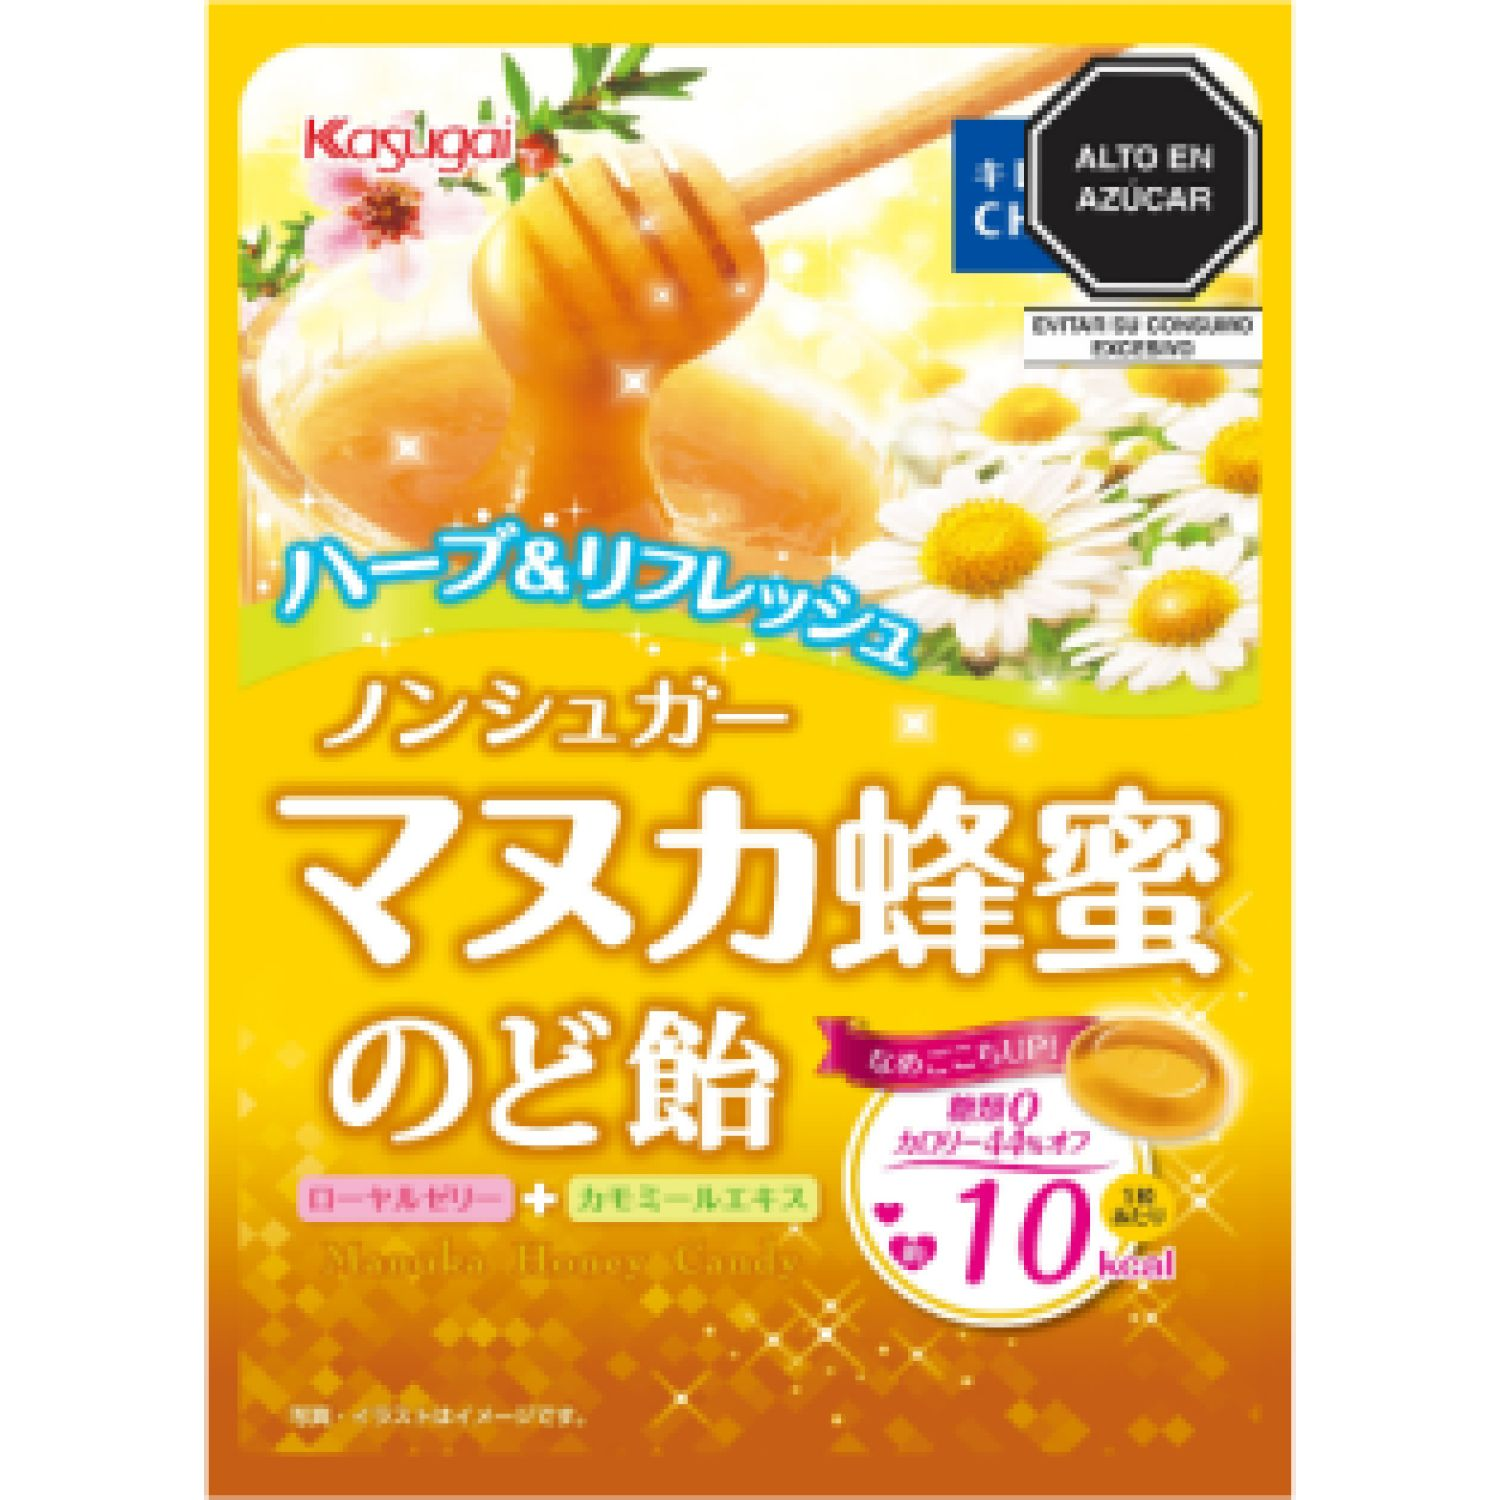 KASUGAI Kasugai Nonsugar Manuka Honey Candy 2.46oz(70g) SIN COLOR Caramelo duro